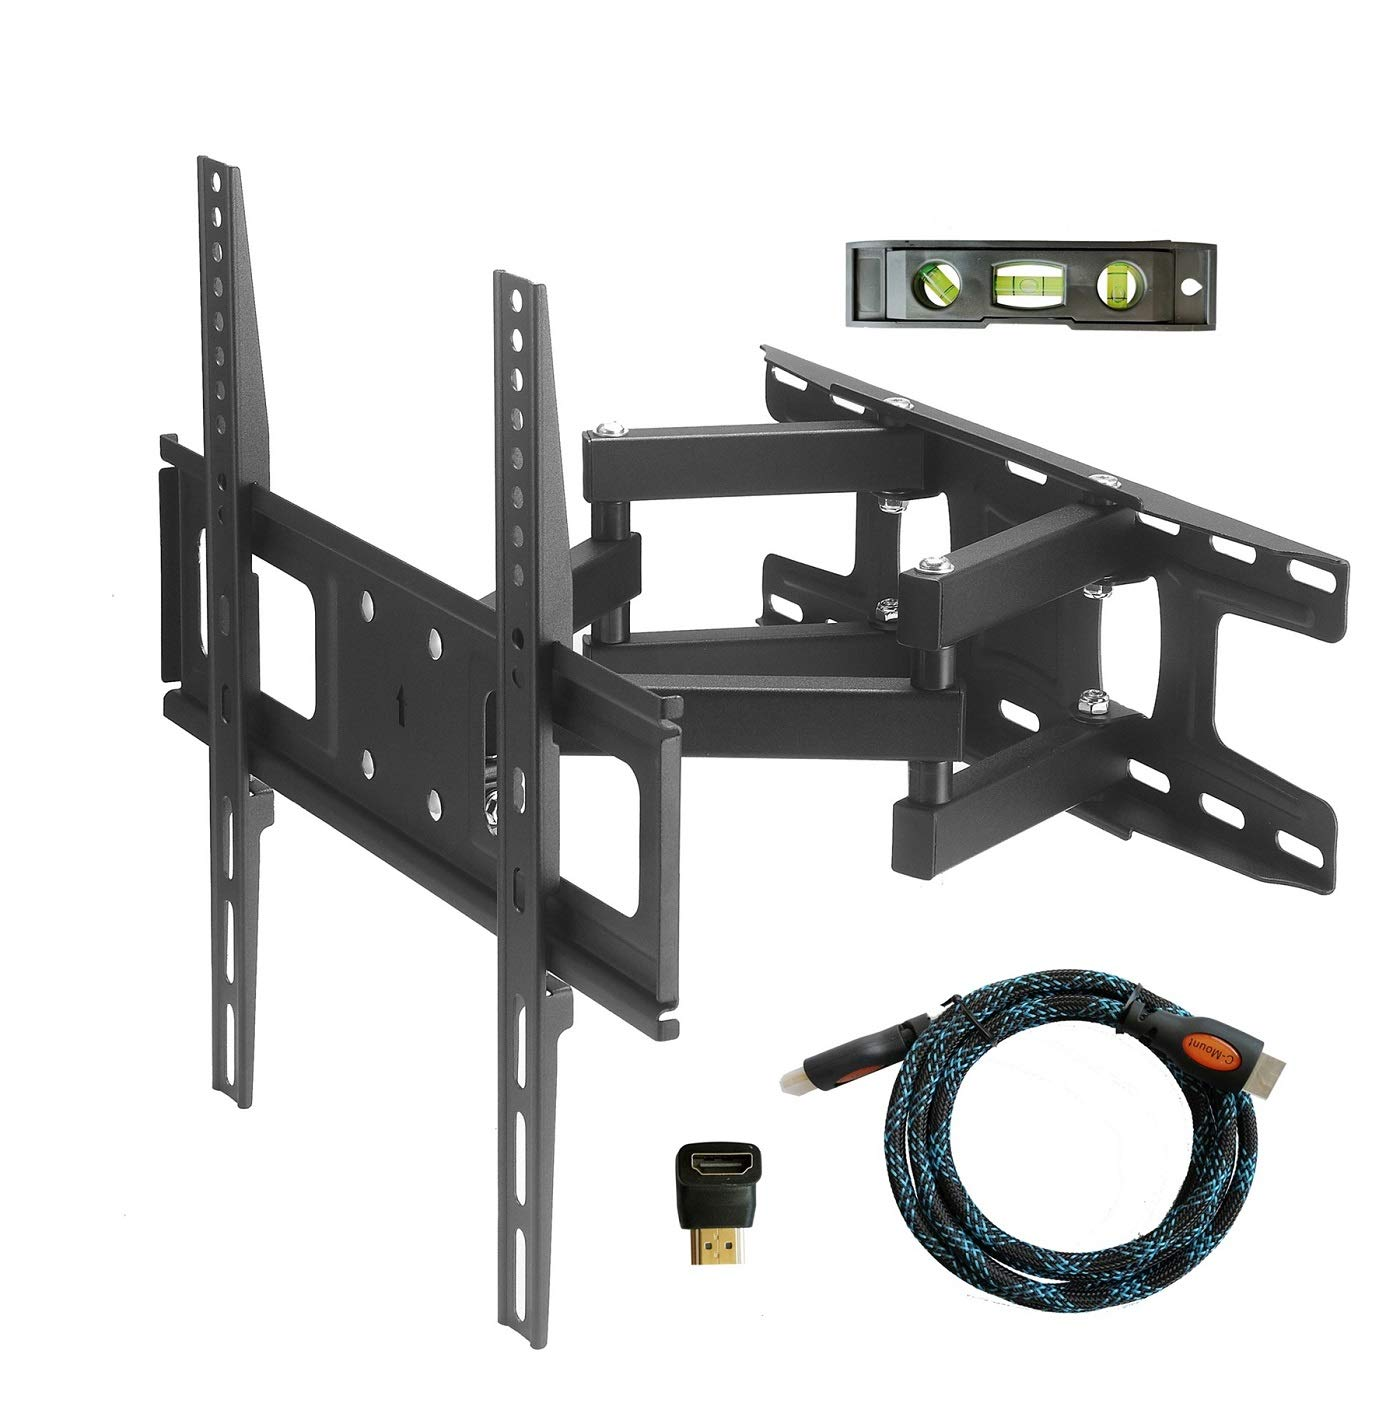 TV Wall Mount Bracket with Full Motion Articulating Dual Arm Swivel Tilt fit 23 32 37 42 47 50 55 Inch Flat Screen TVs,VESA 400X400 and 110lbs,Fits up to 16'' Studs, Includes HDMI and HDMI Adapter by C-MOUNTS